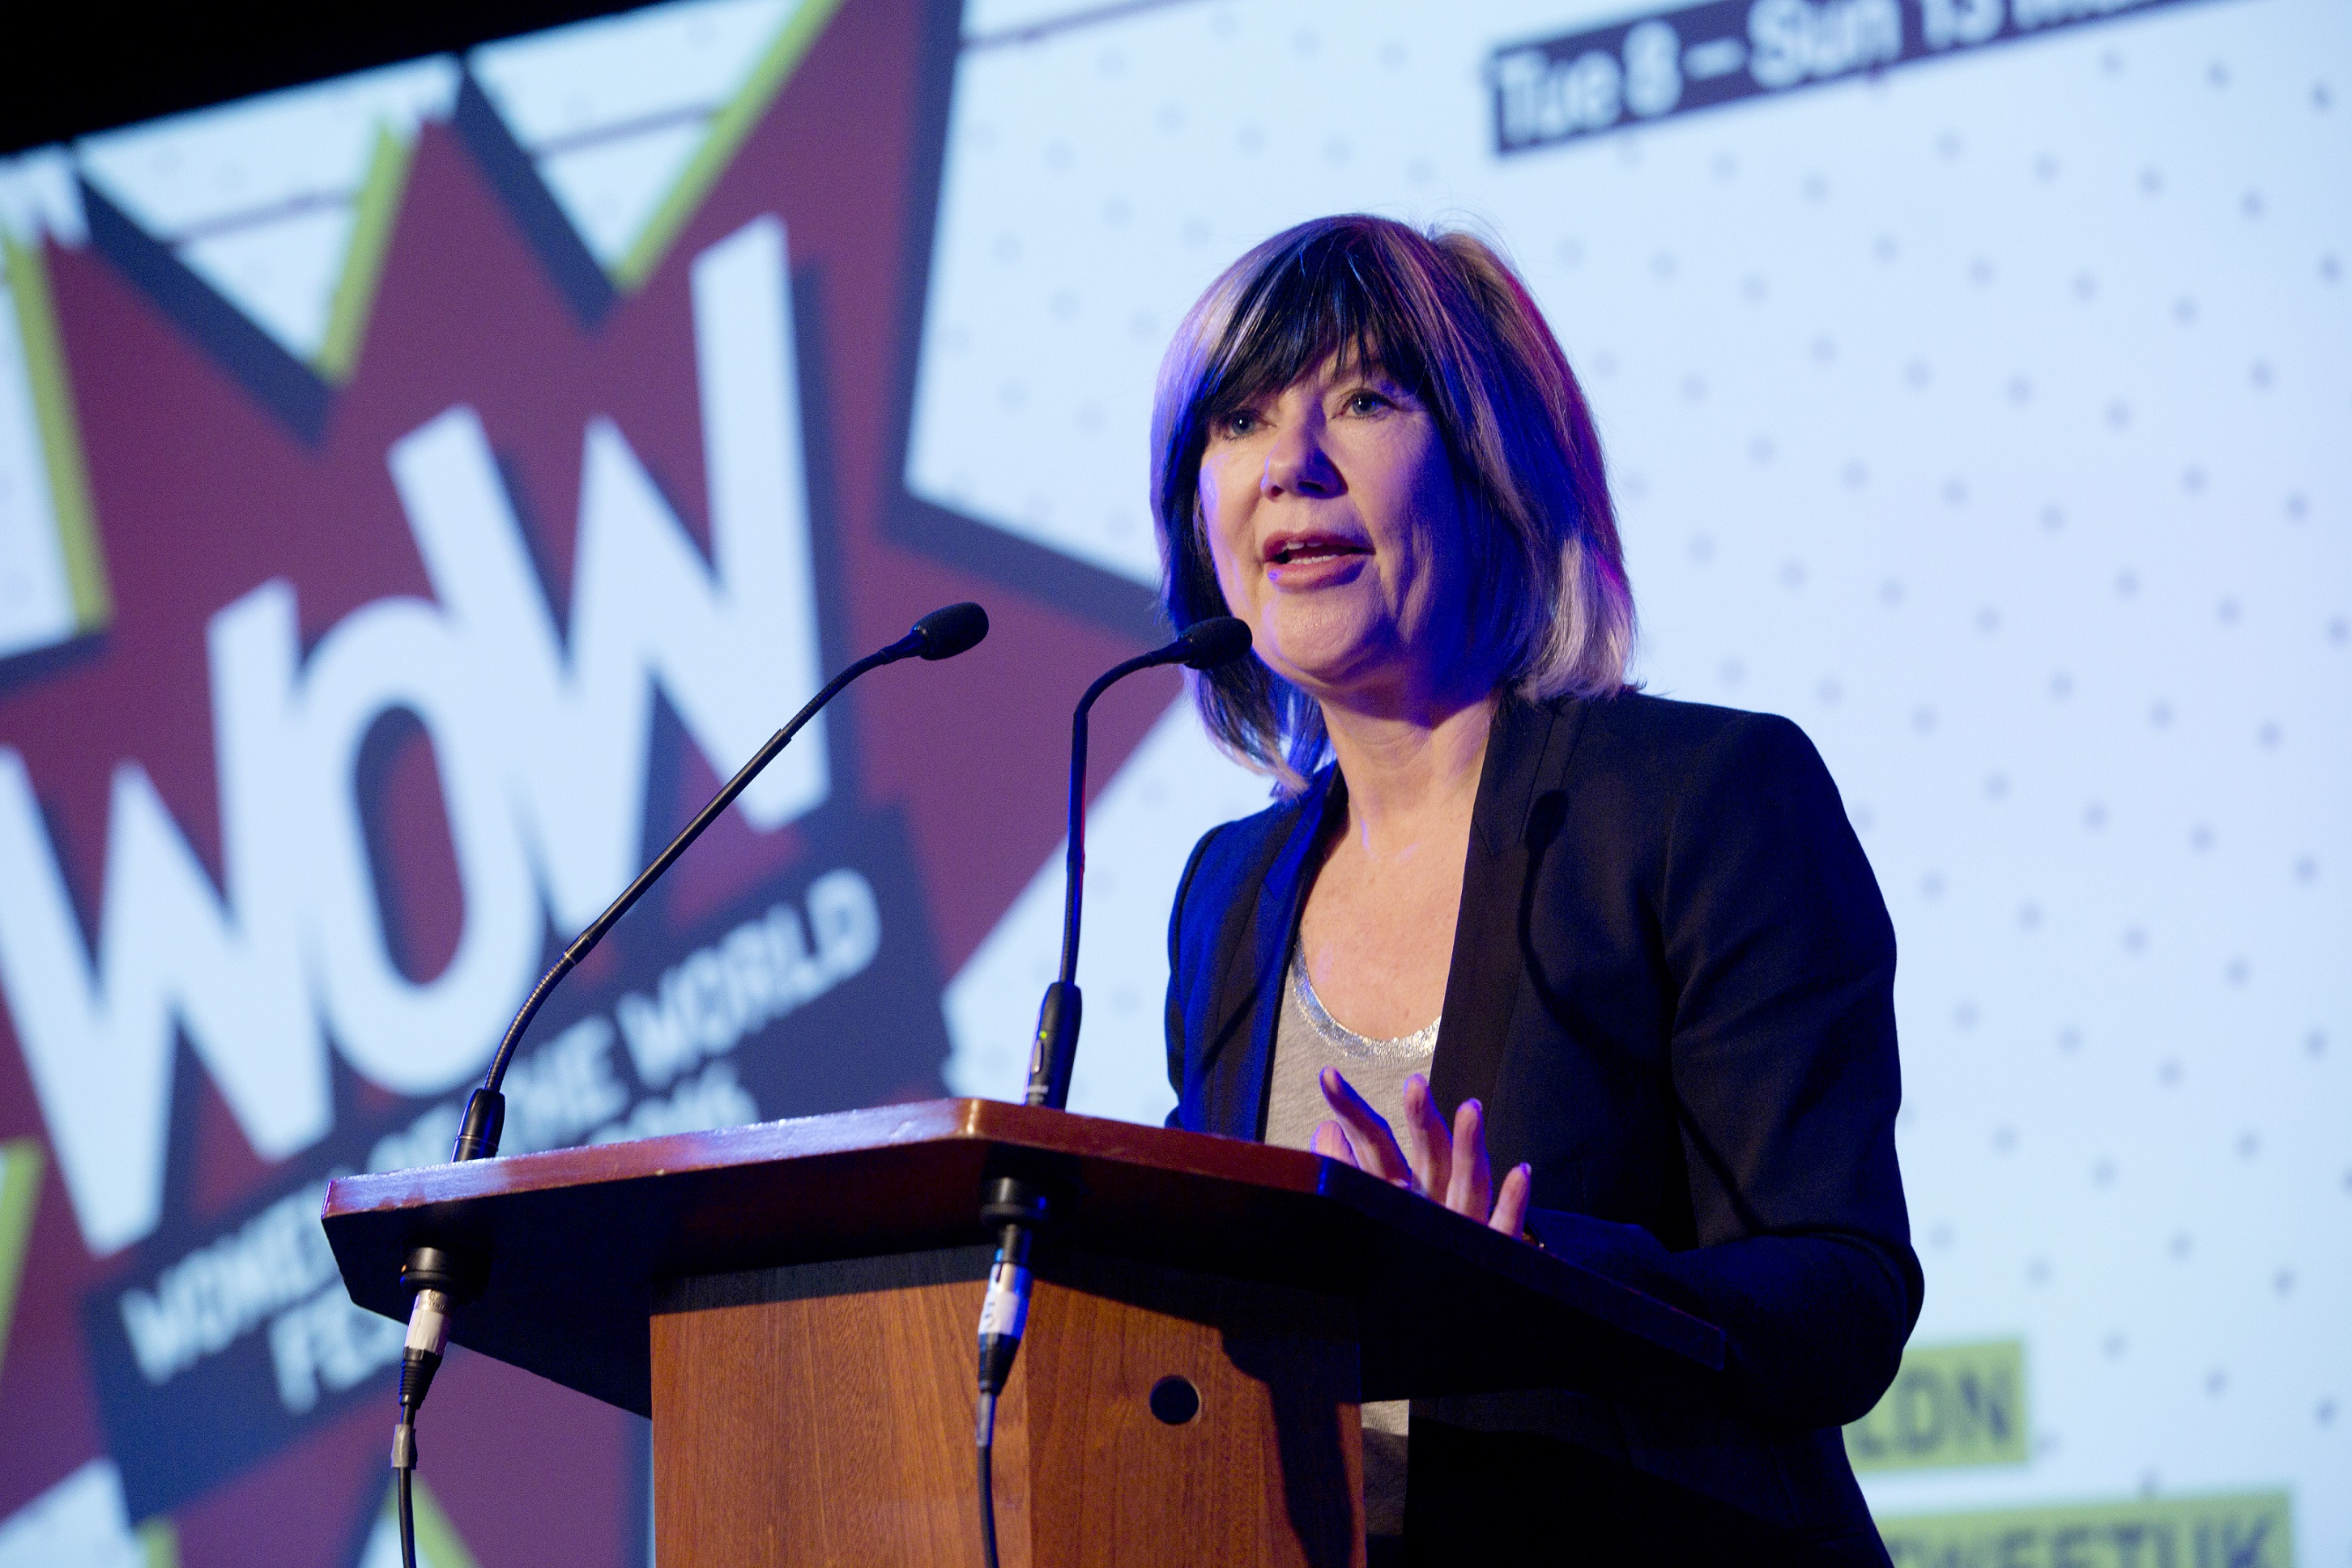 Woman at lectern with screen with WOW logo in background